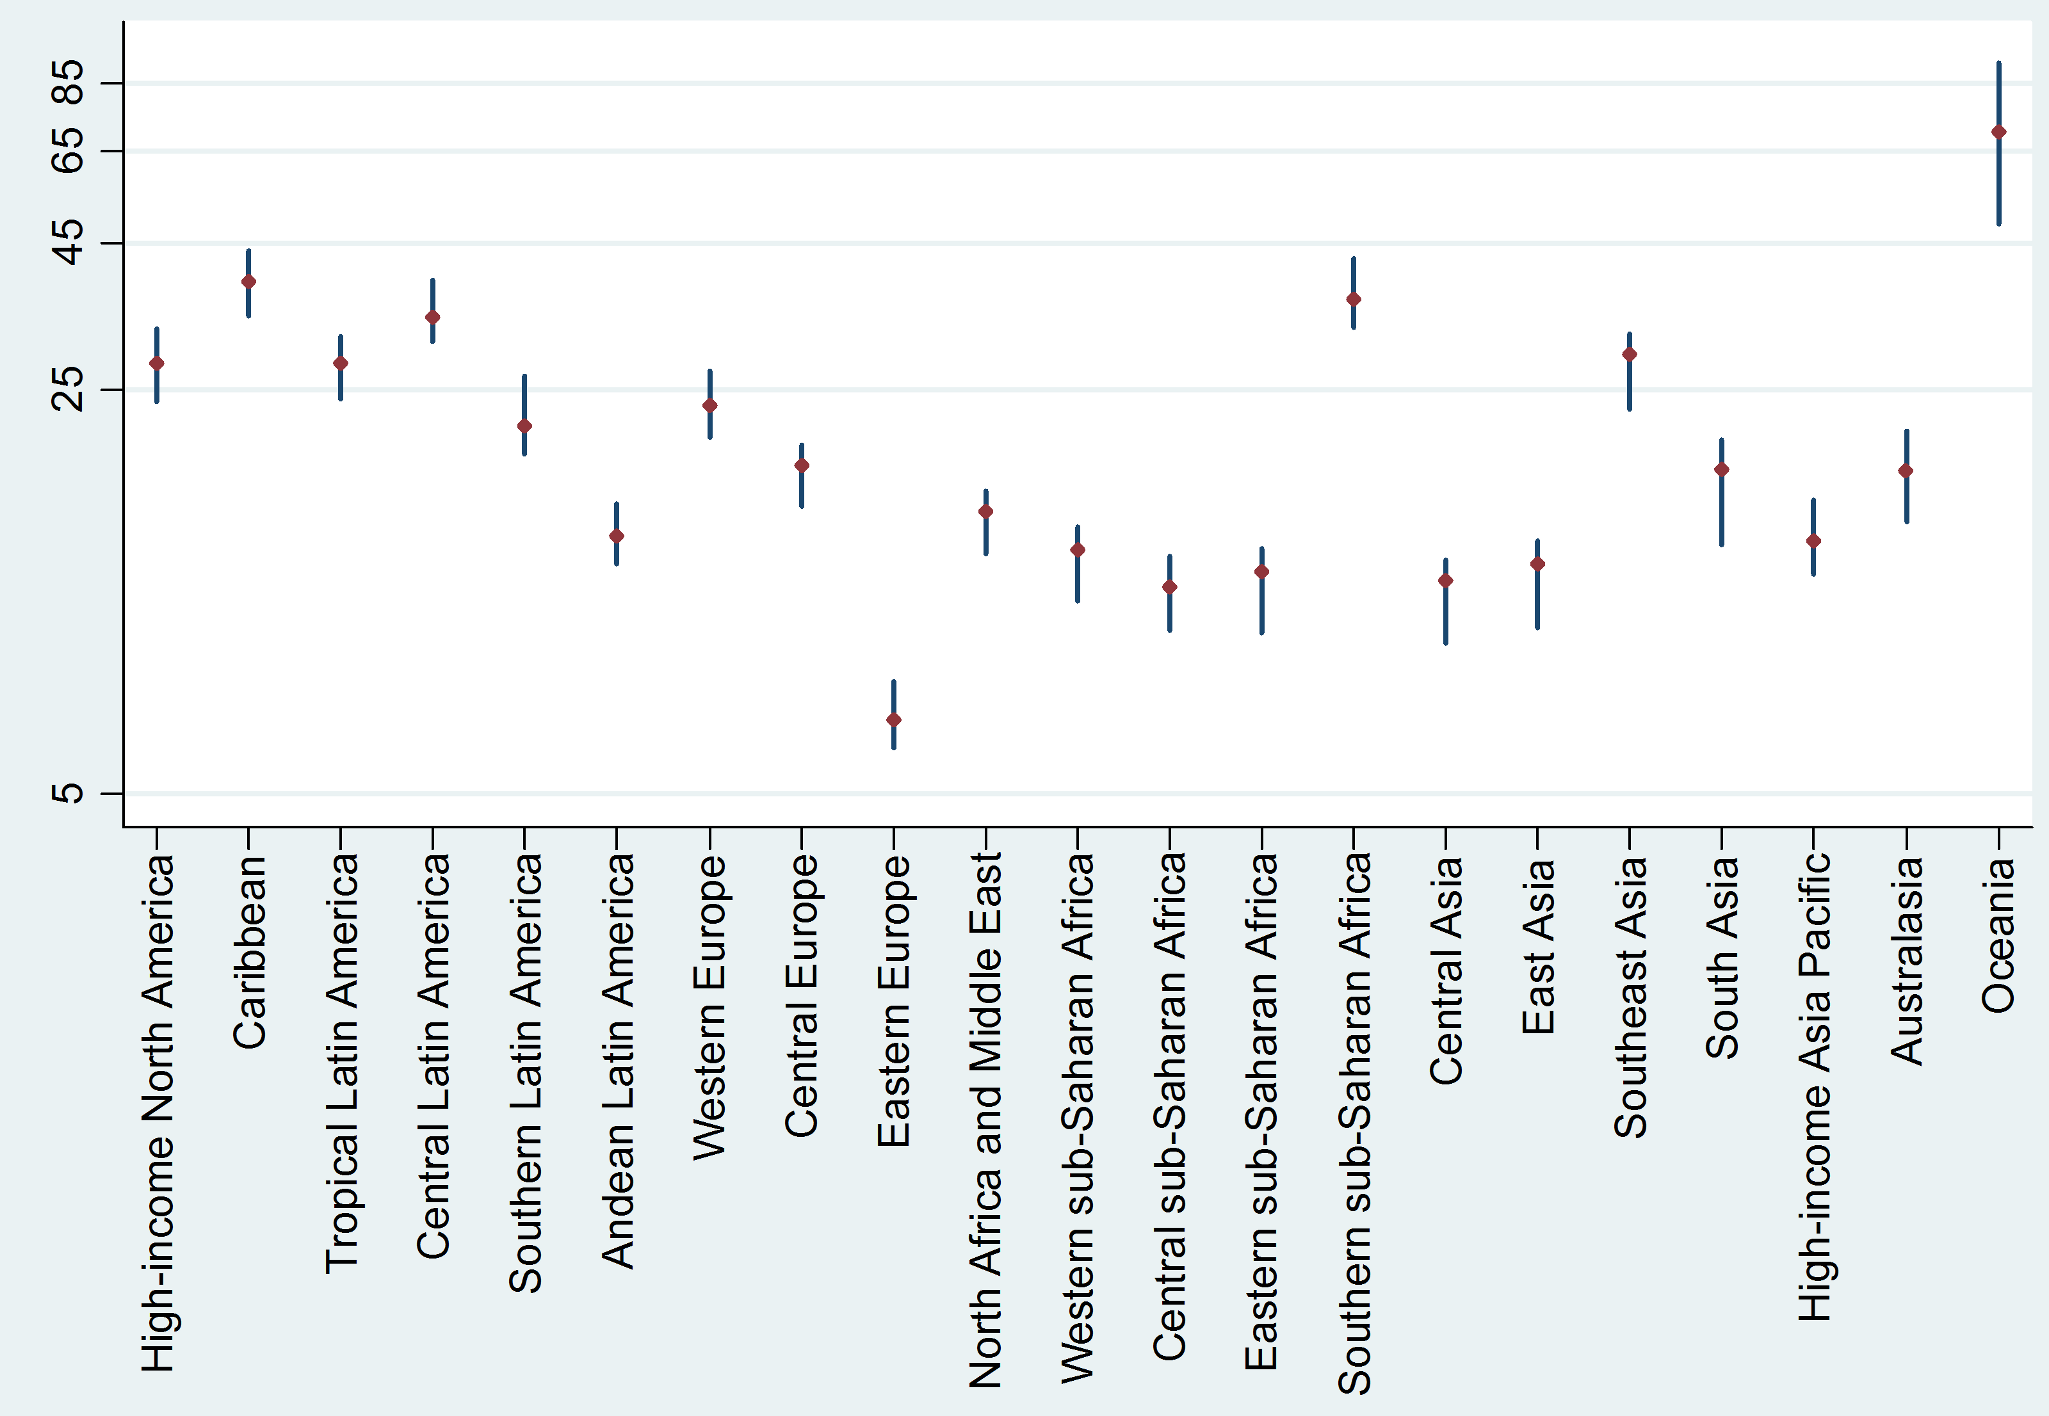 Diabetes mortality rates per 100,000 (with 95% uncertainty intervals) by GBD-2010 region for 2010.